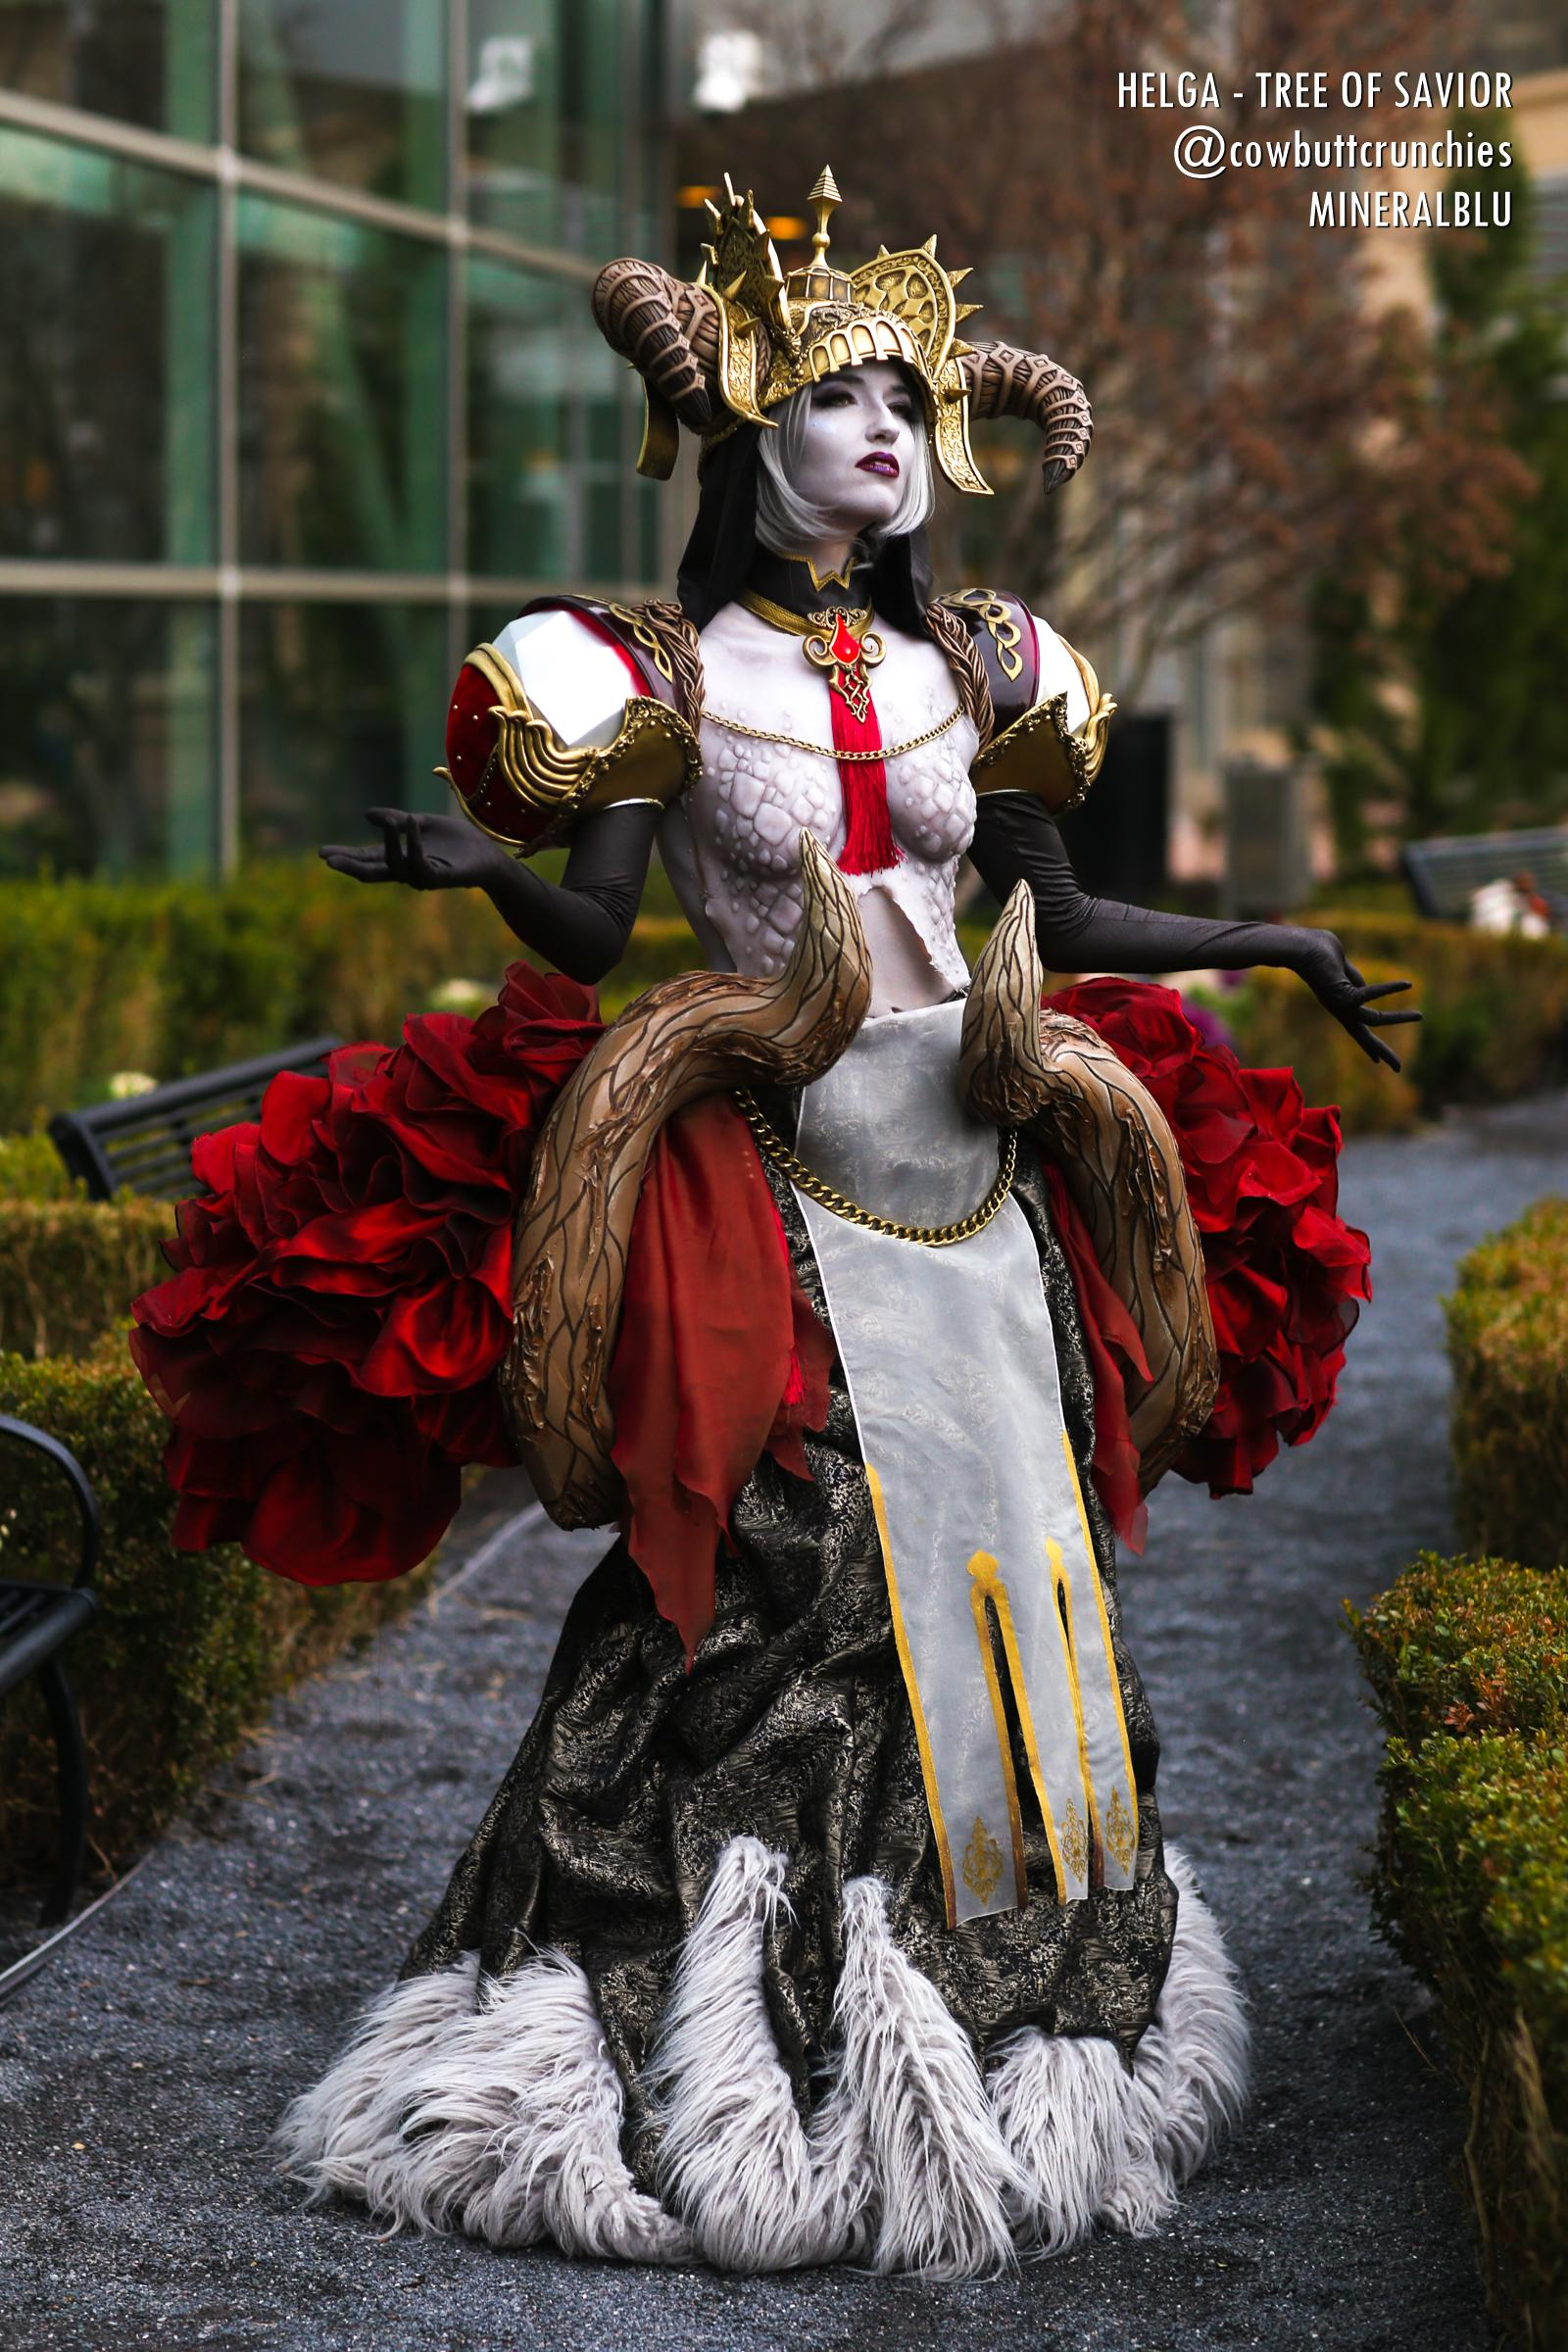 Helgasercle cosplay from Tree of Savior